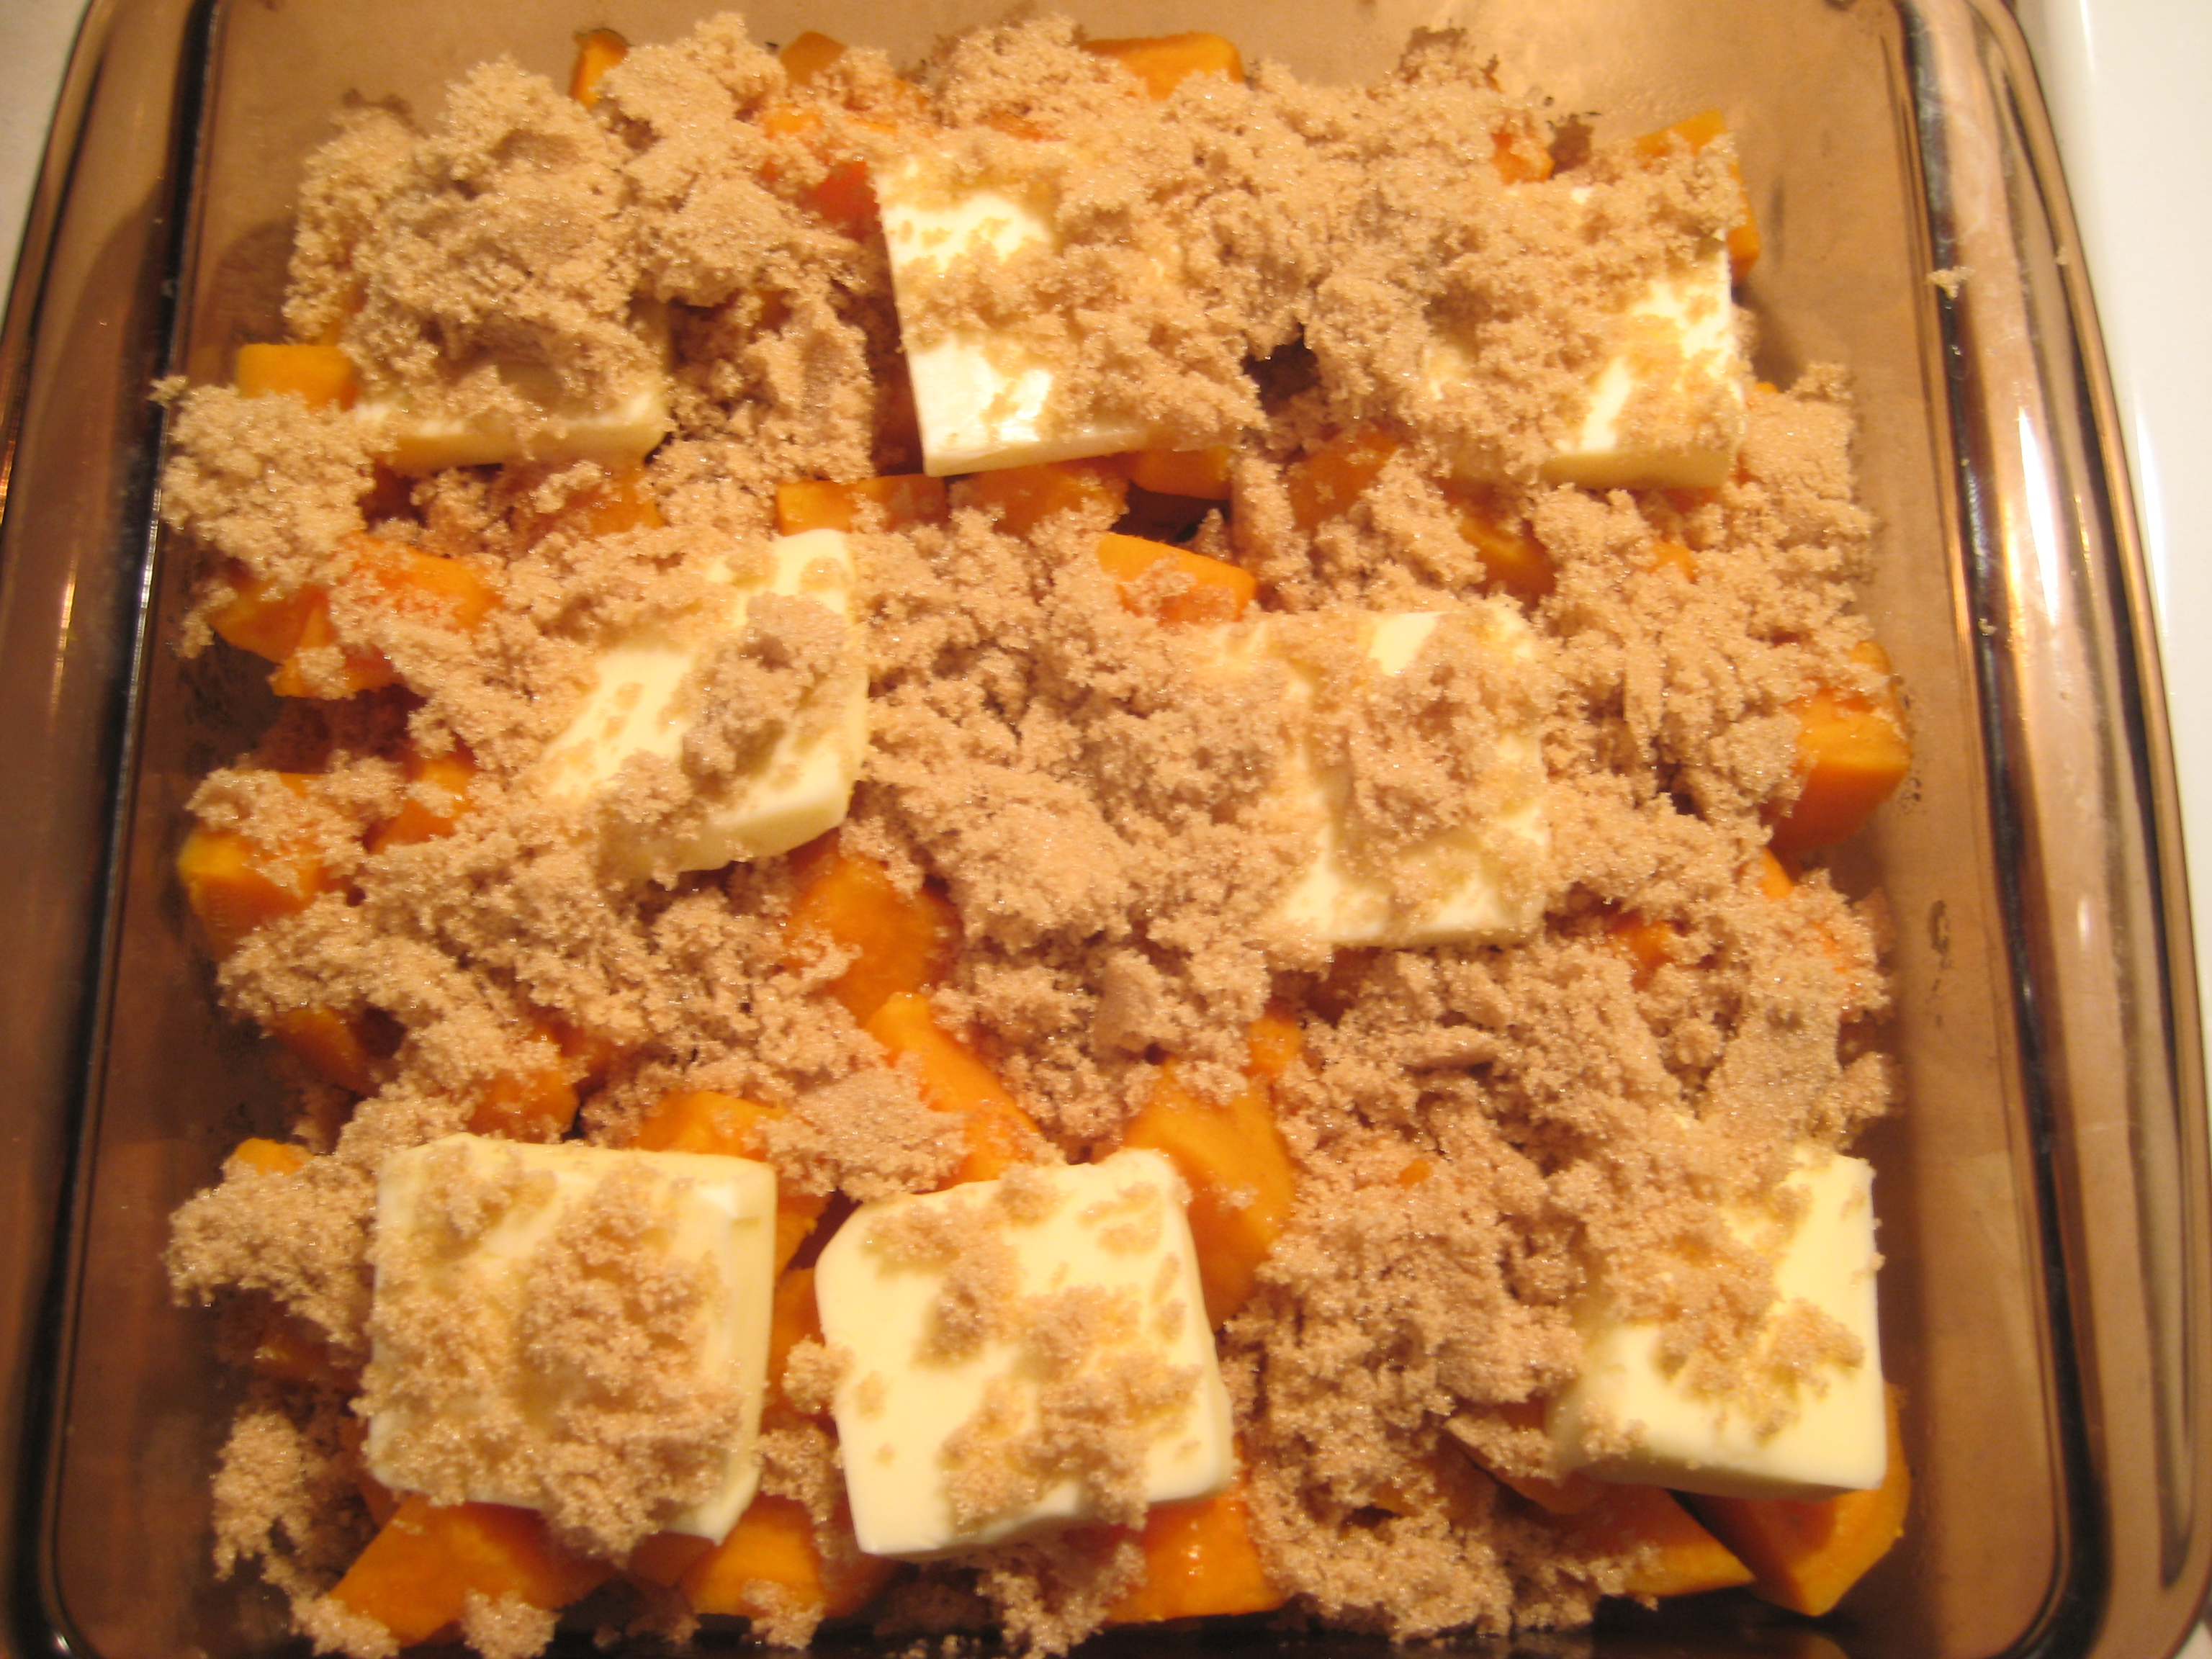 Cherry Lane Cooks: Sweet Potato Recipes #1 – Sweet Potato Casserole With Brown Sugar and Pecans